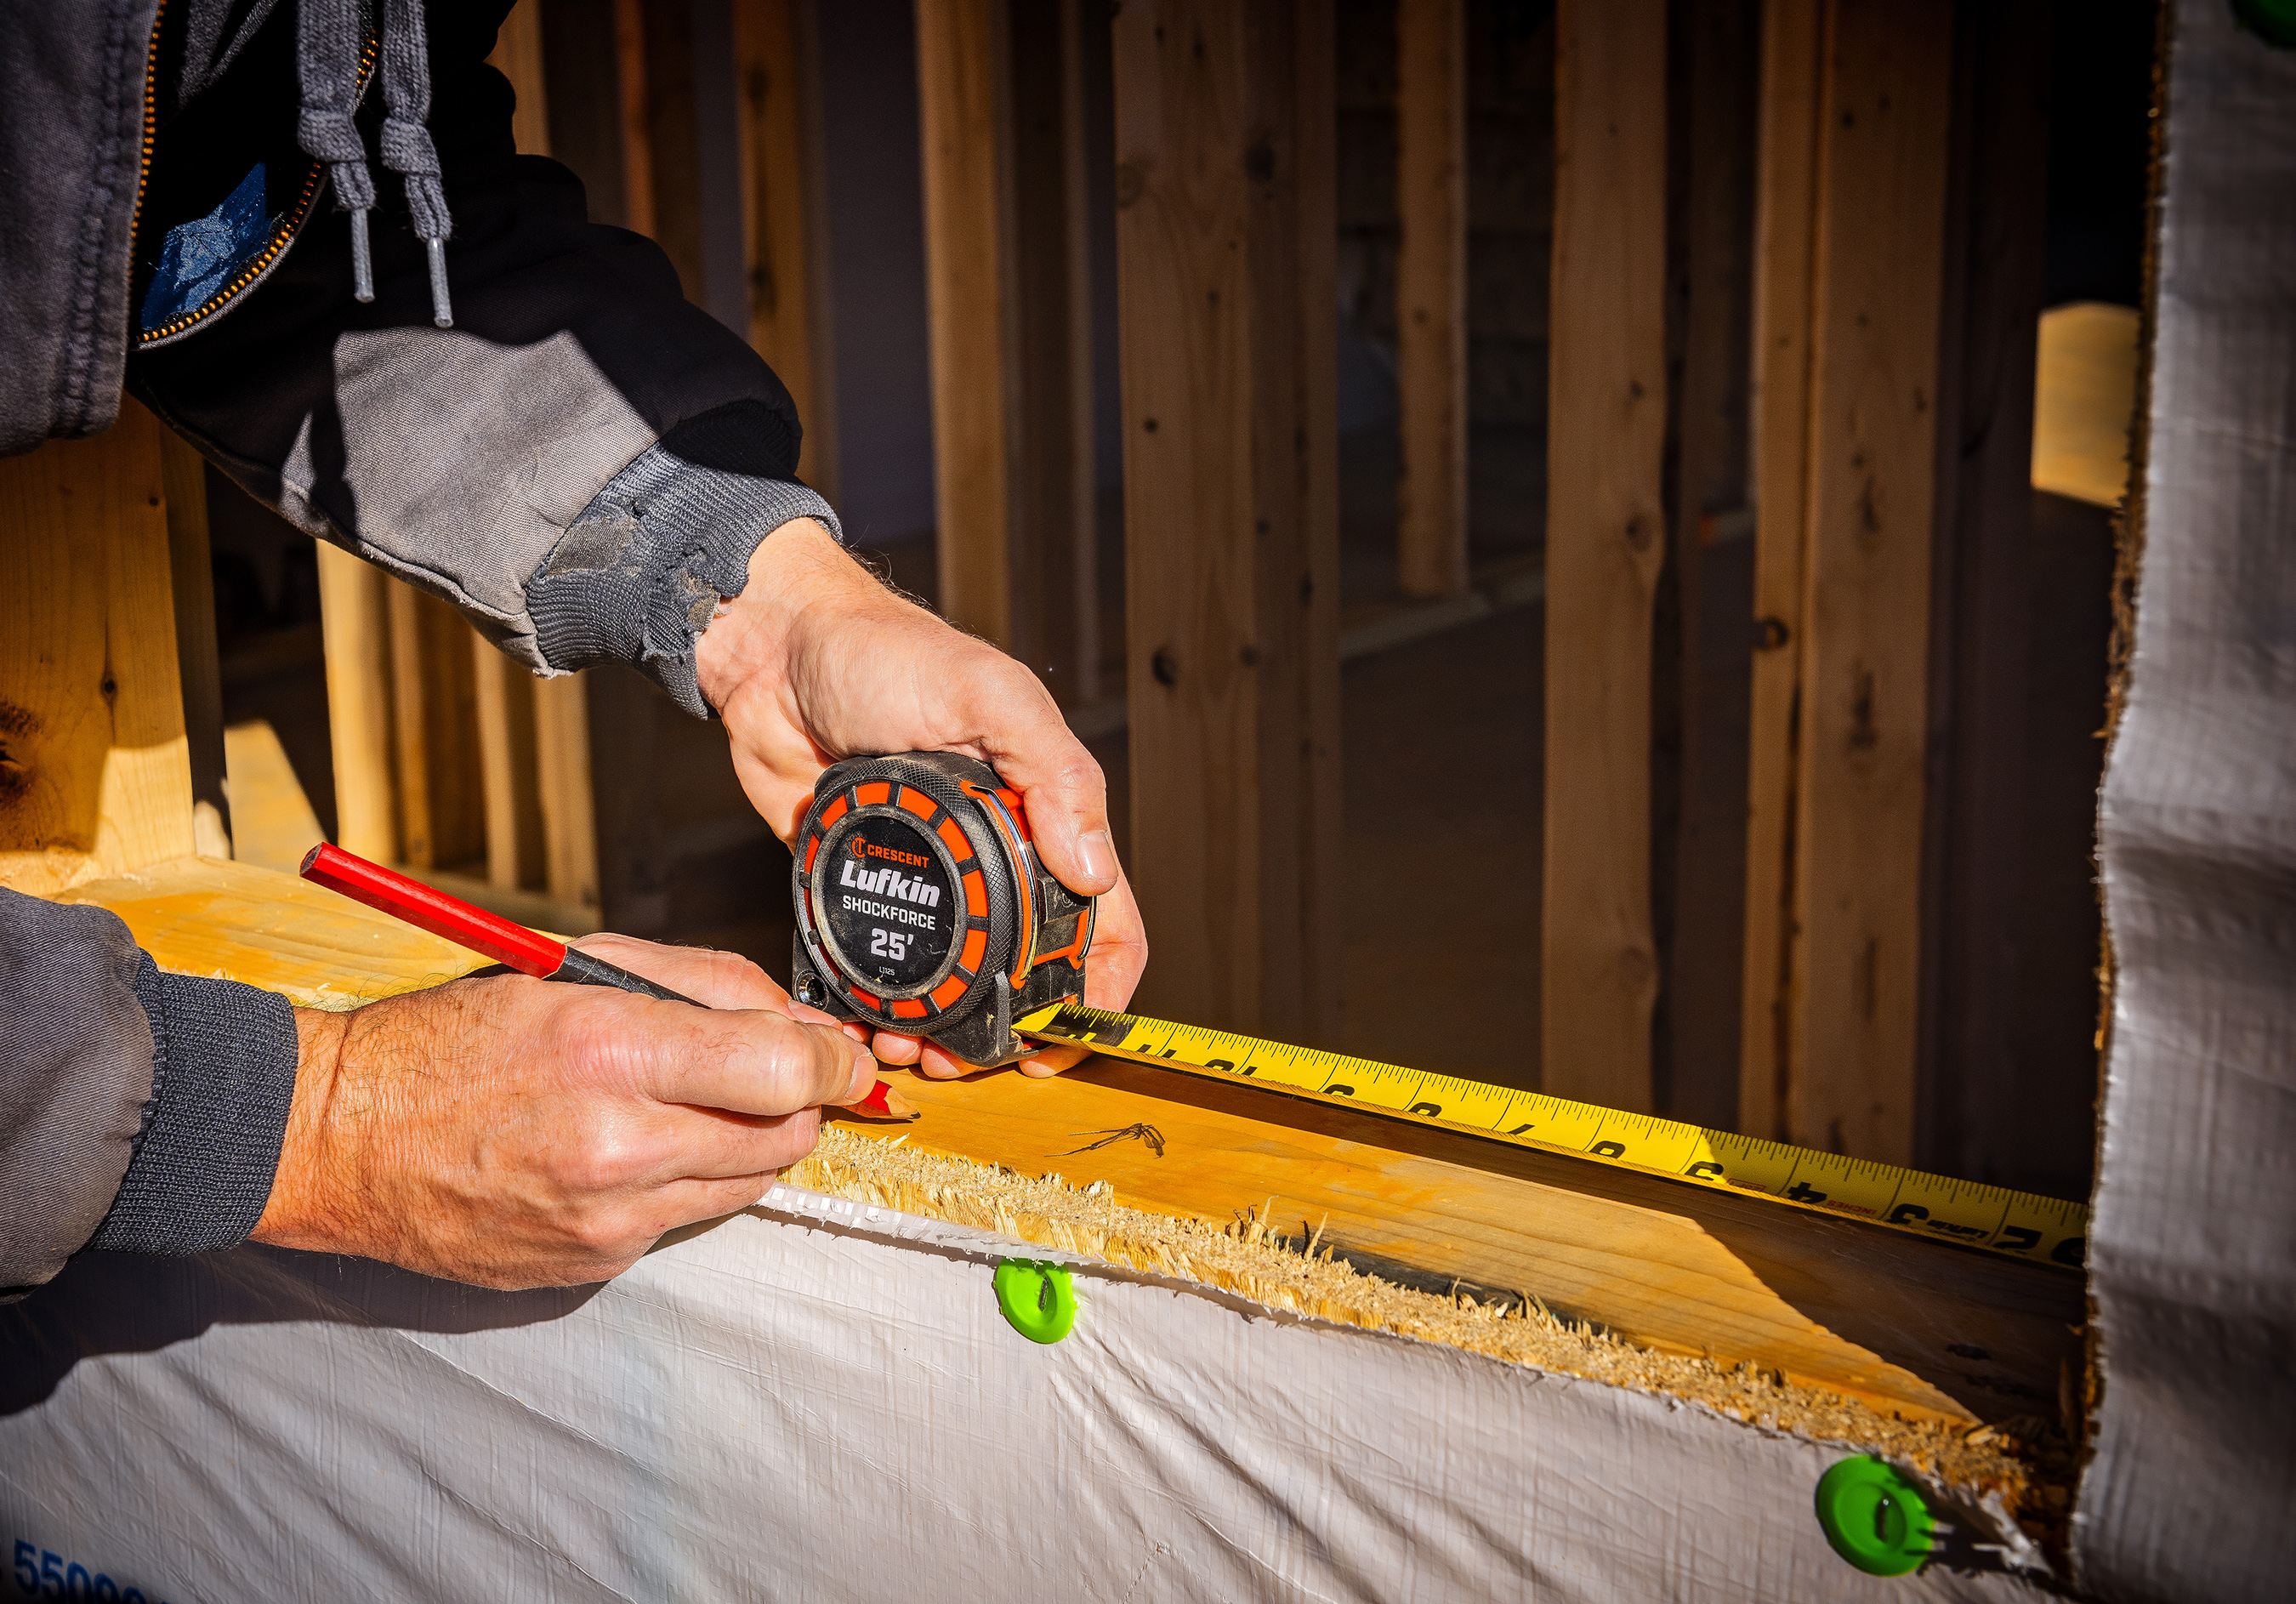 New Crescent Lufkin® Shockforce™ and Shockforce Nite Eye™ tapes are built to take a beating on the jobsite and can withstand a 100-foot drop.